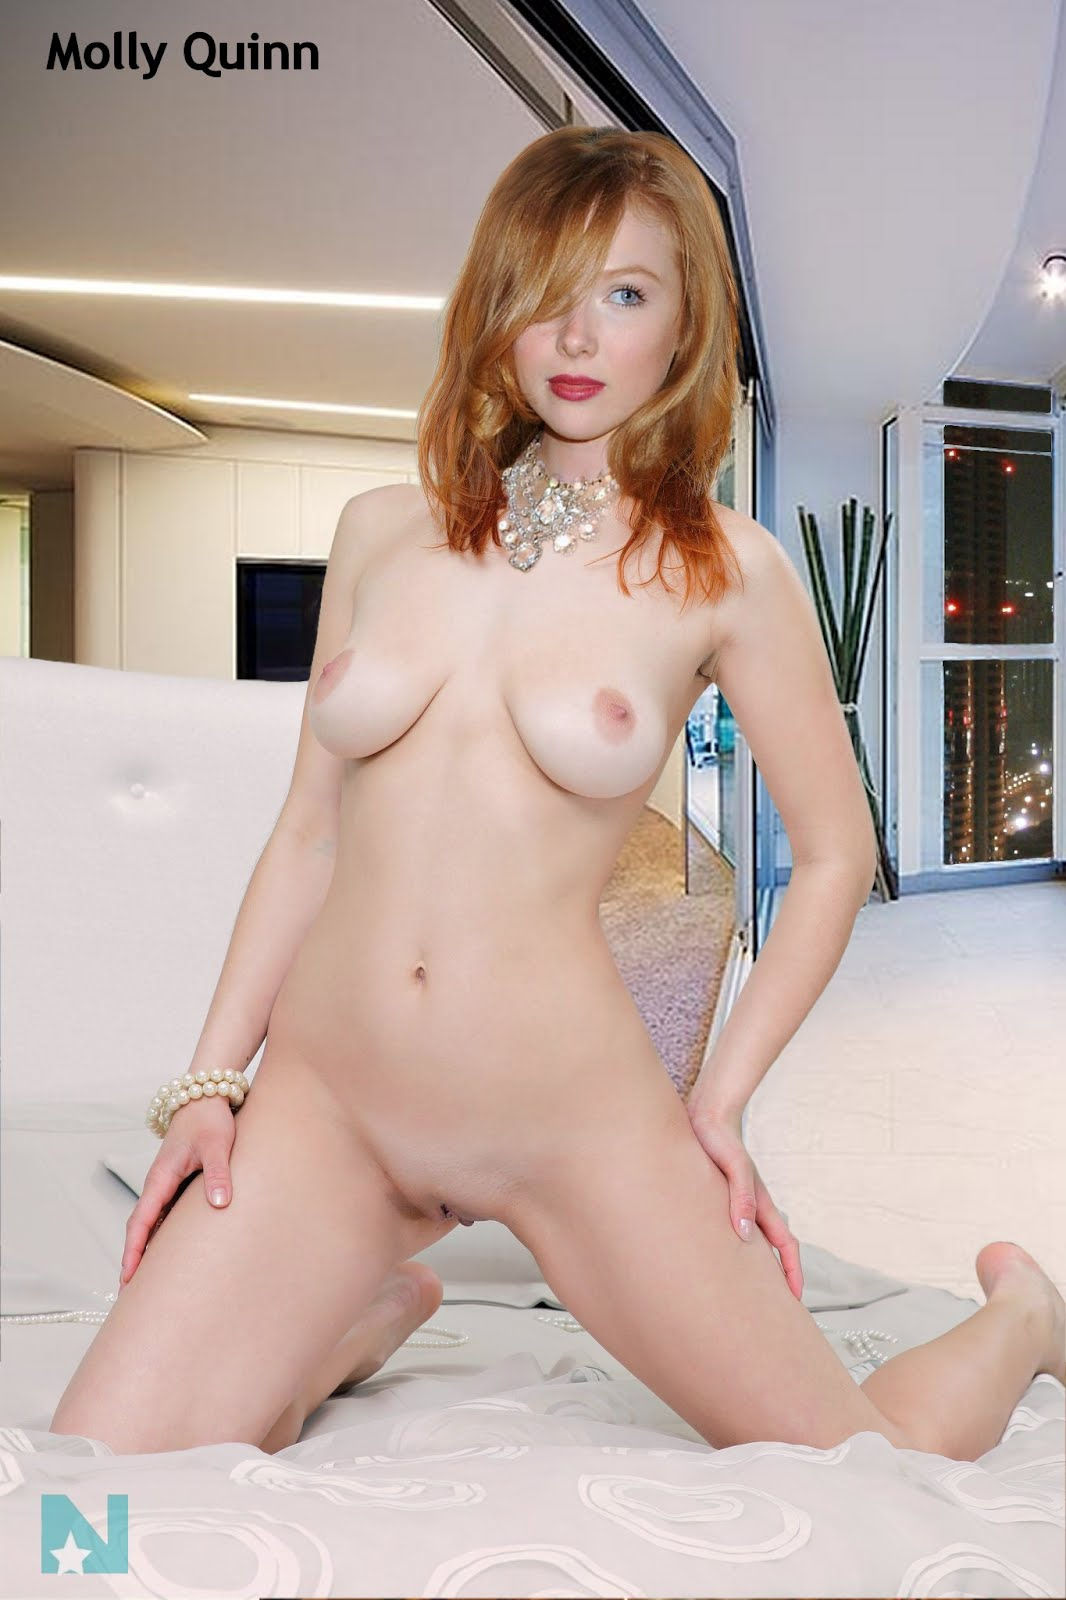 Trillian Fakes : Molly Quinn Hot Naked Babe